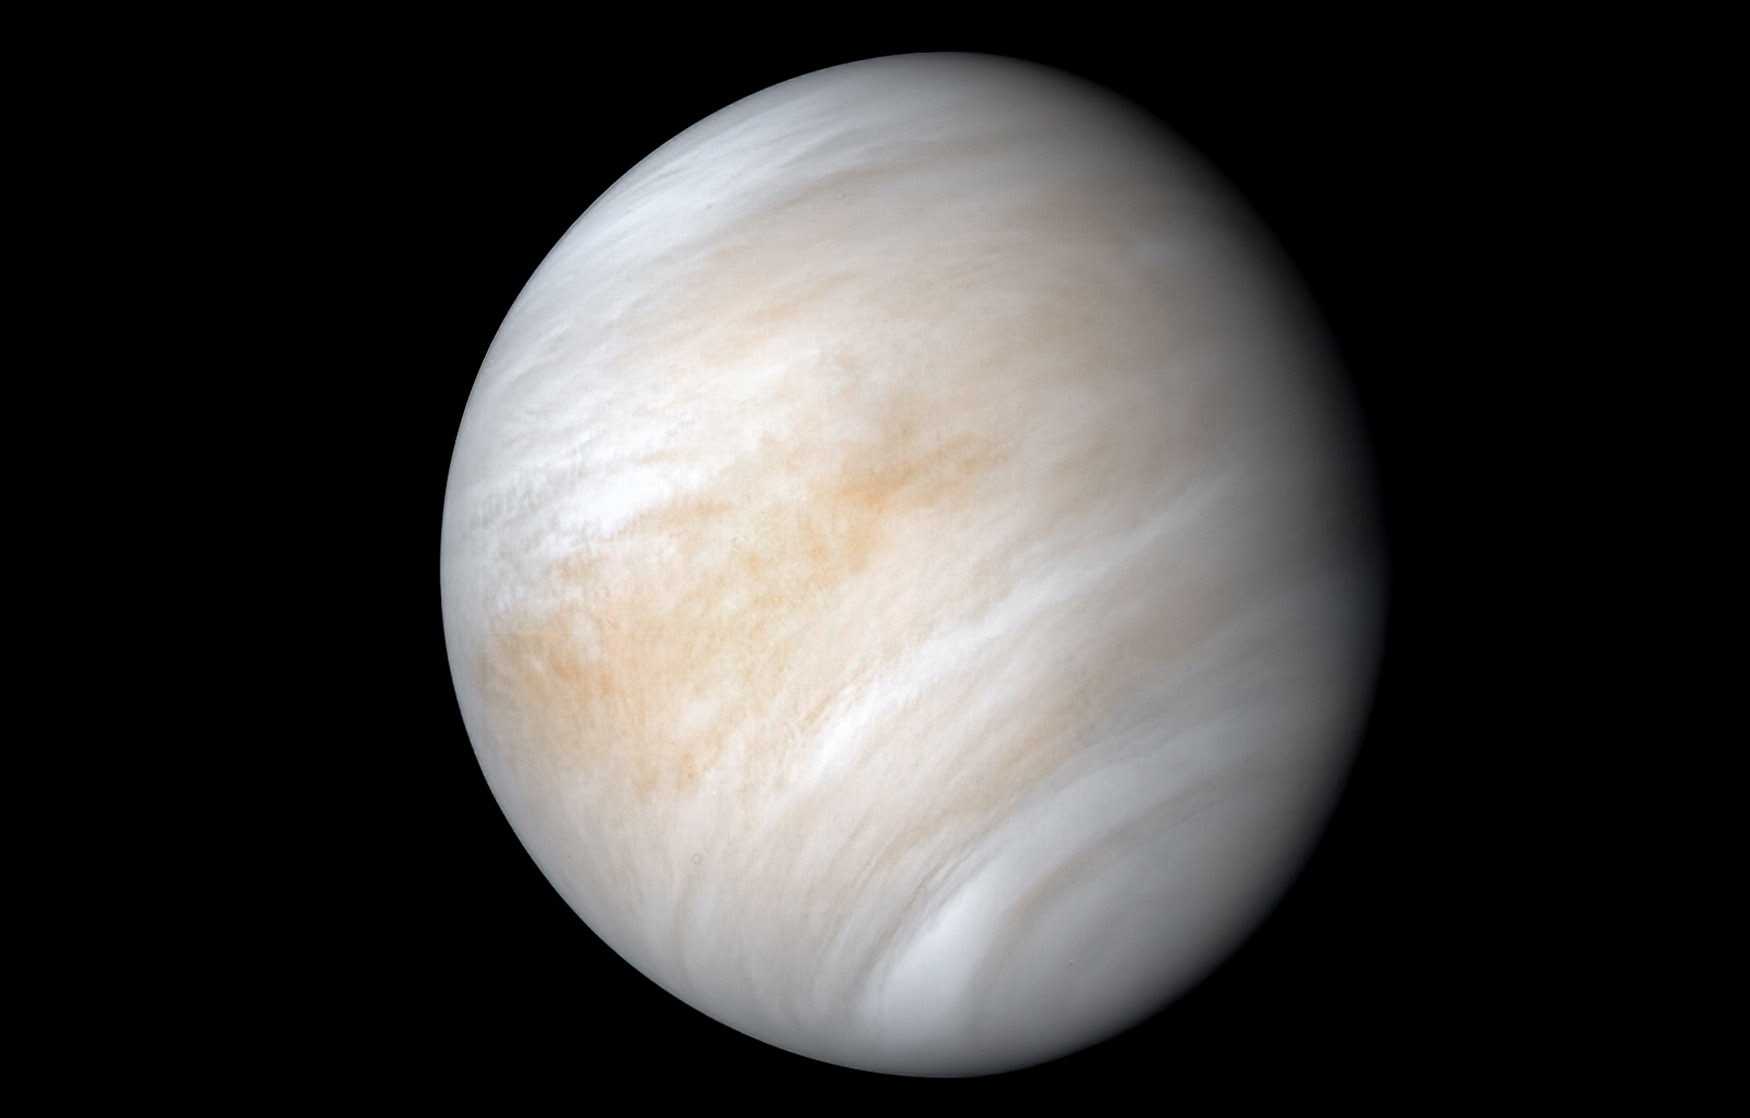 A space probe was already headed for Venus before the 'life' debate began - BGR